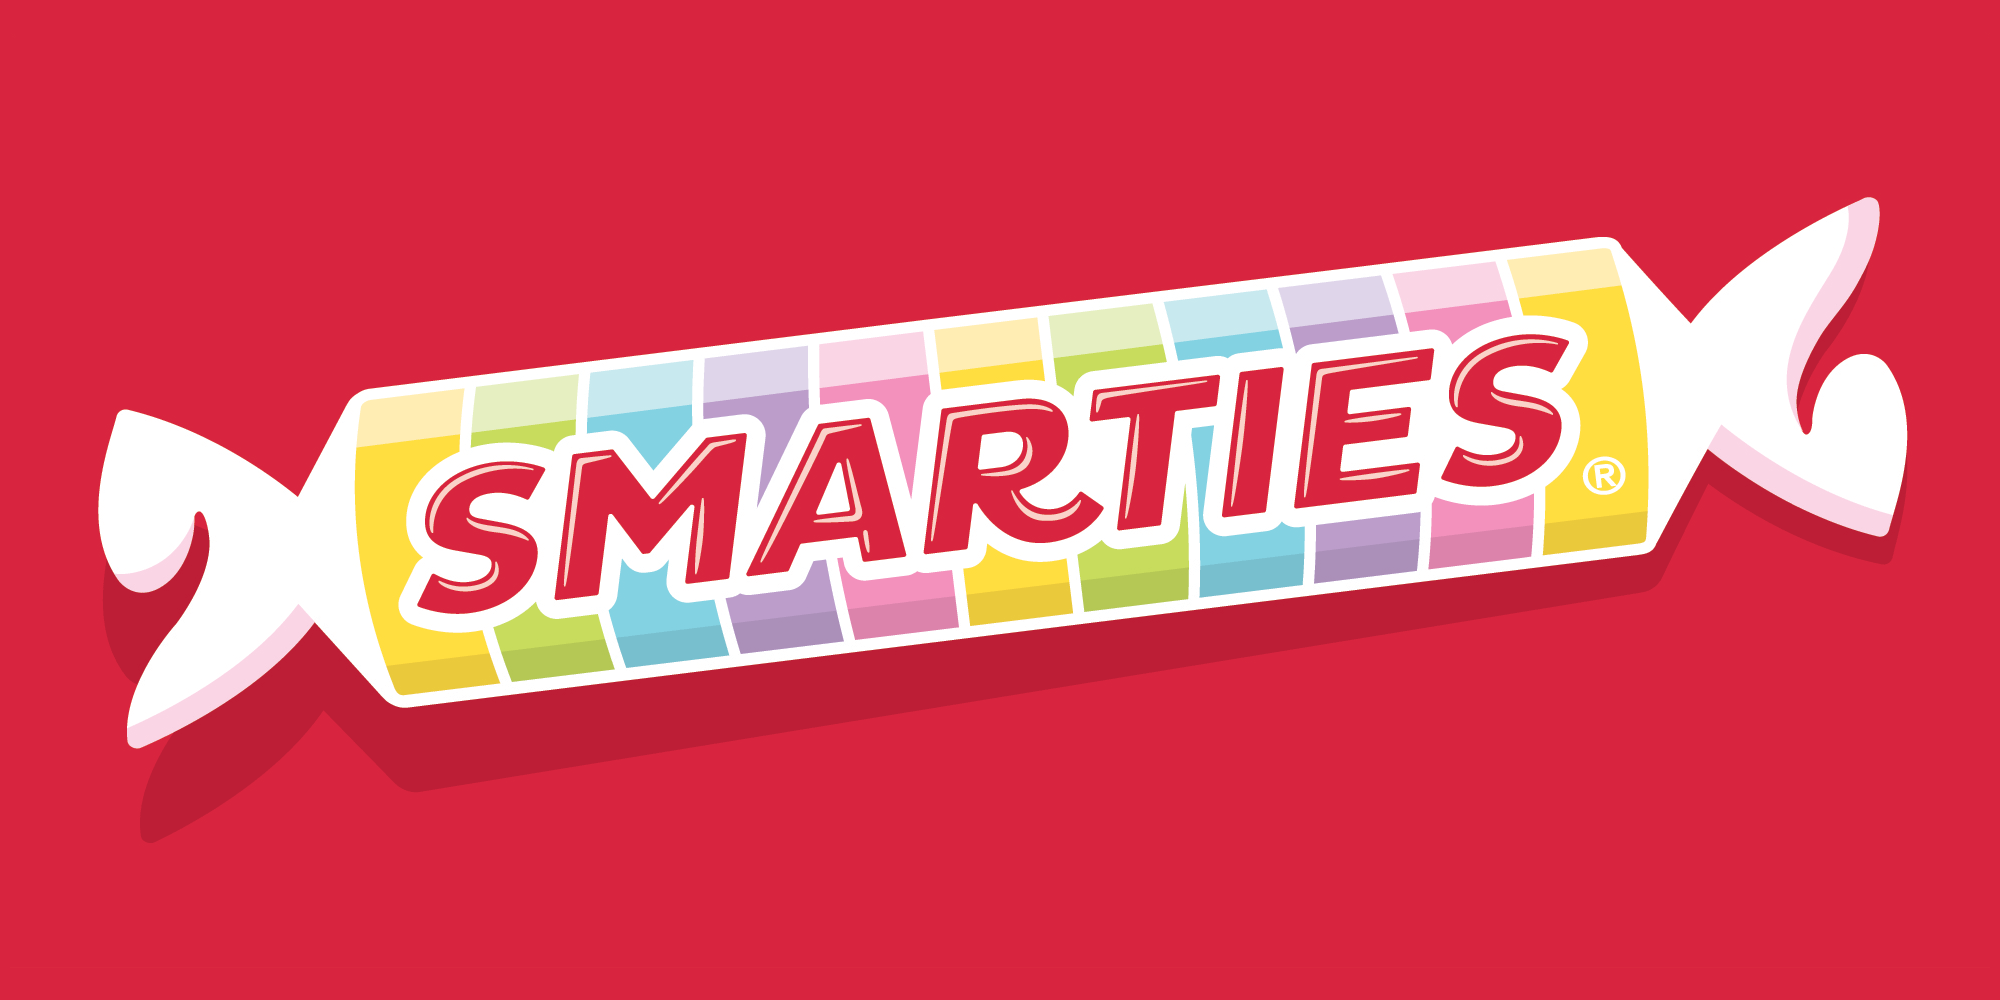 New Logo and Packaging for Smarties by Pearlfisher